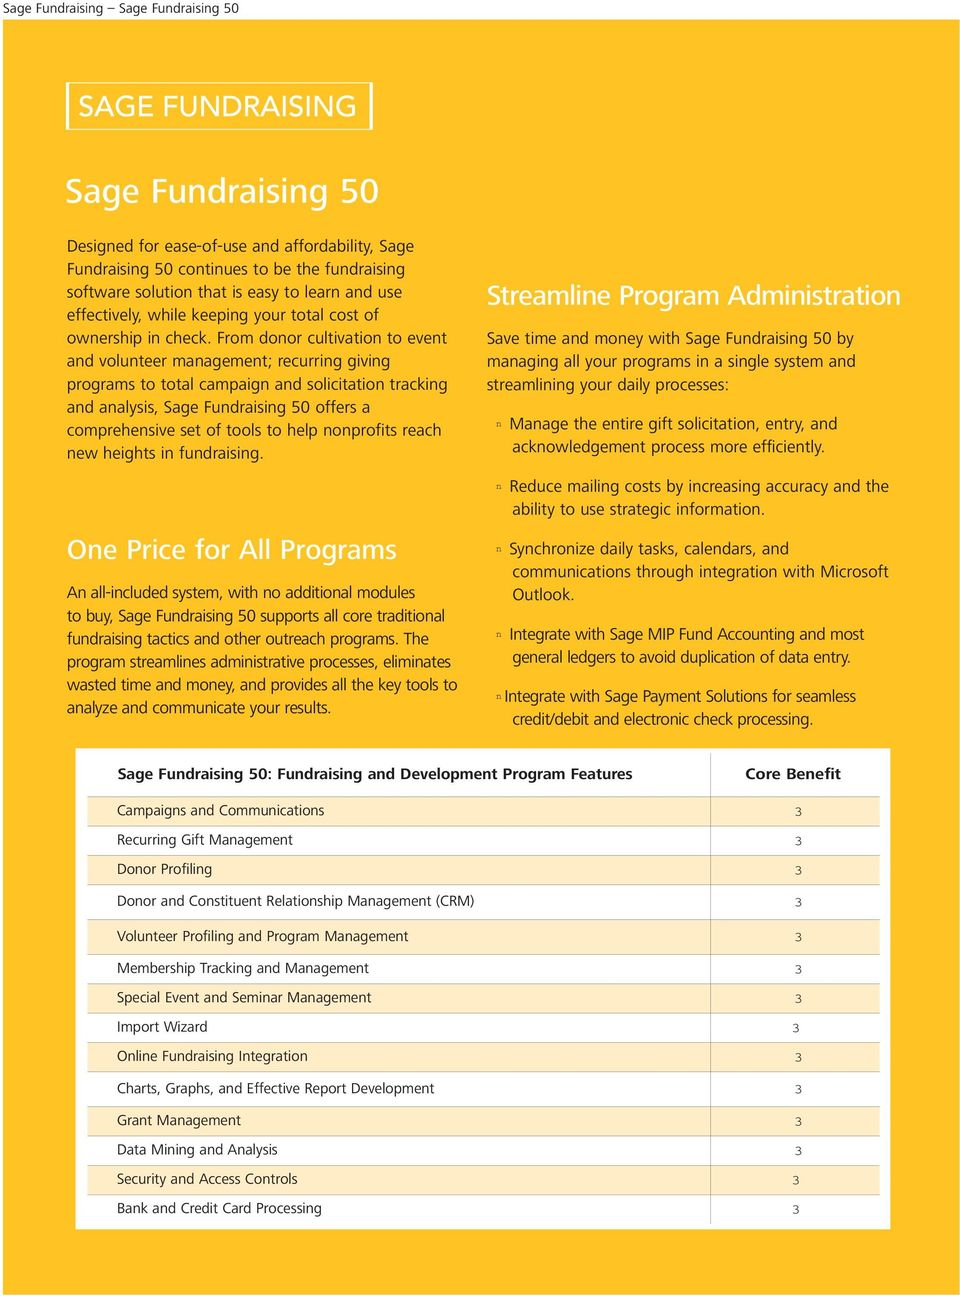 From door cultivatio to evet ad voluteer maagemet; recurrig givig programs to total campaig ad solicitatio trackig ad aalysis, Sage Fudraisig 50 offers a comprehesive set of tools to help oprofits